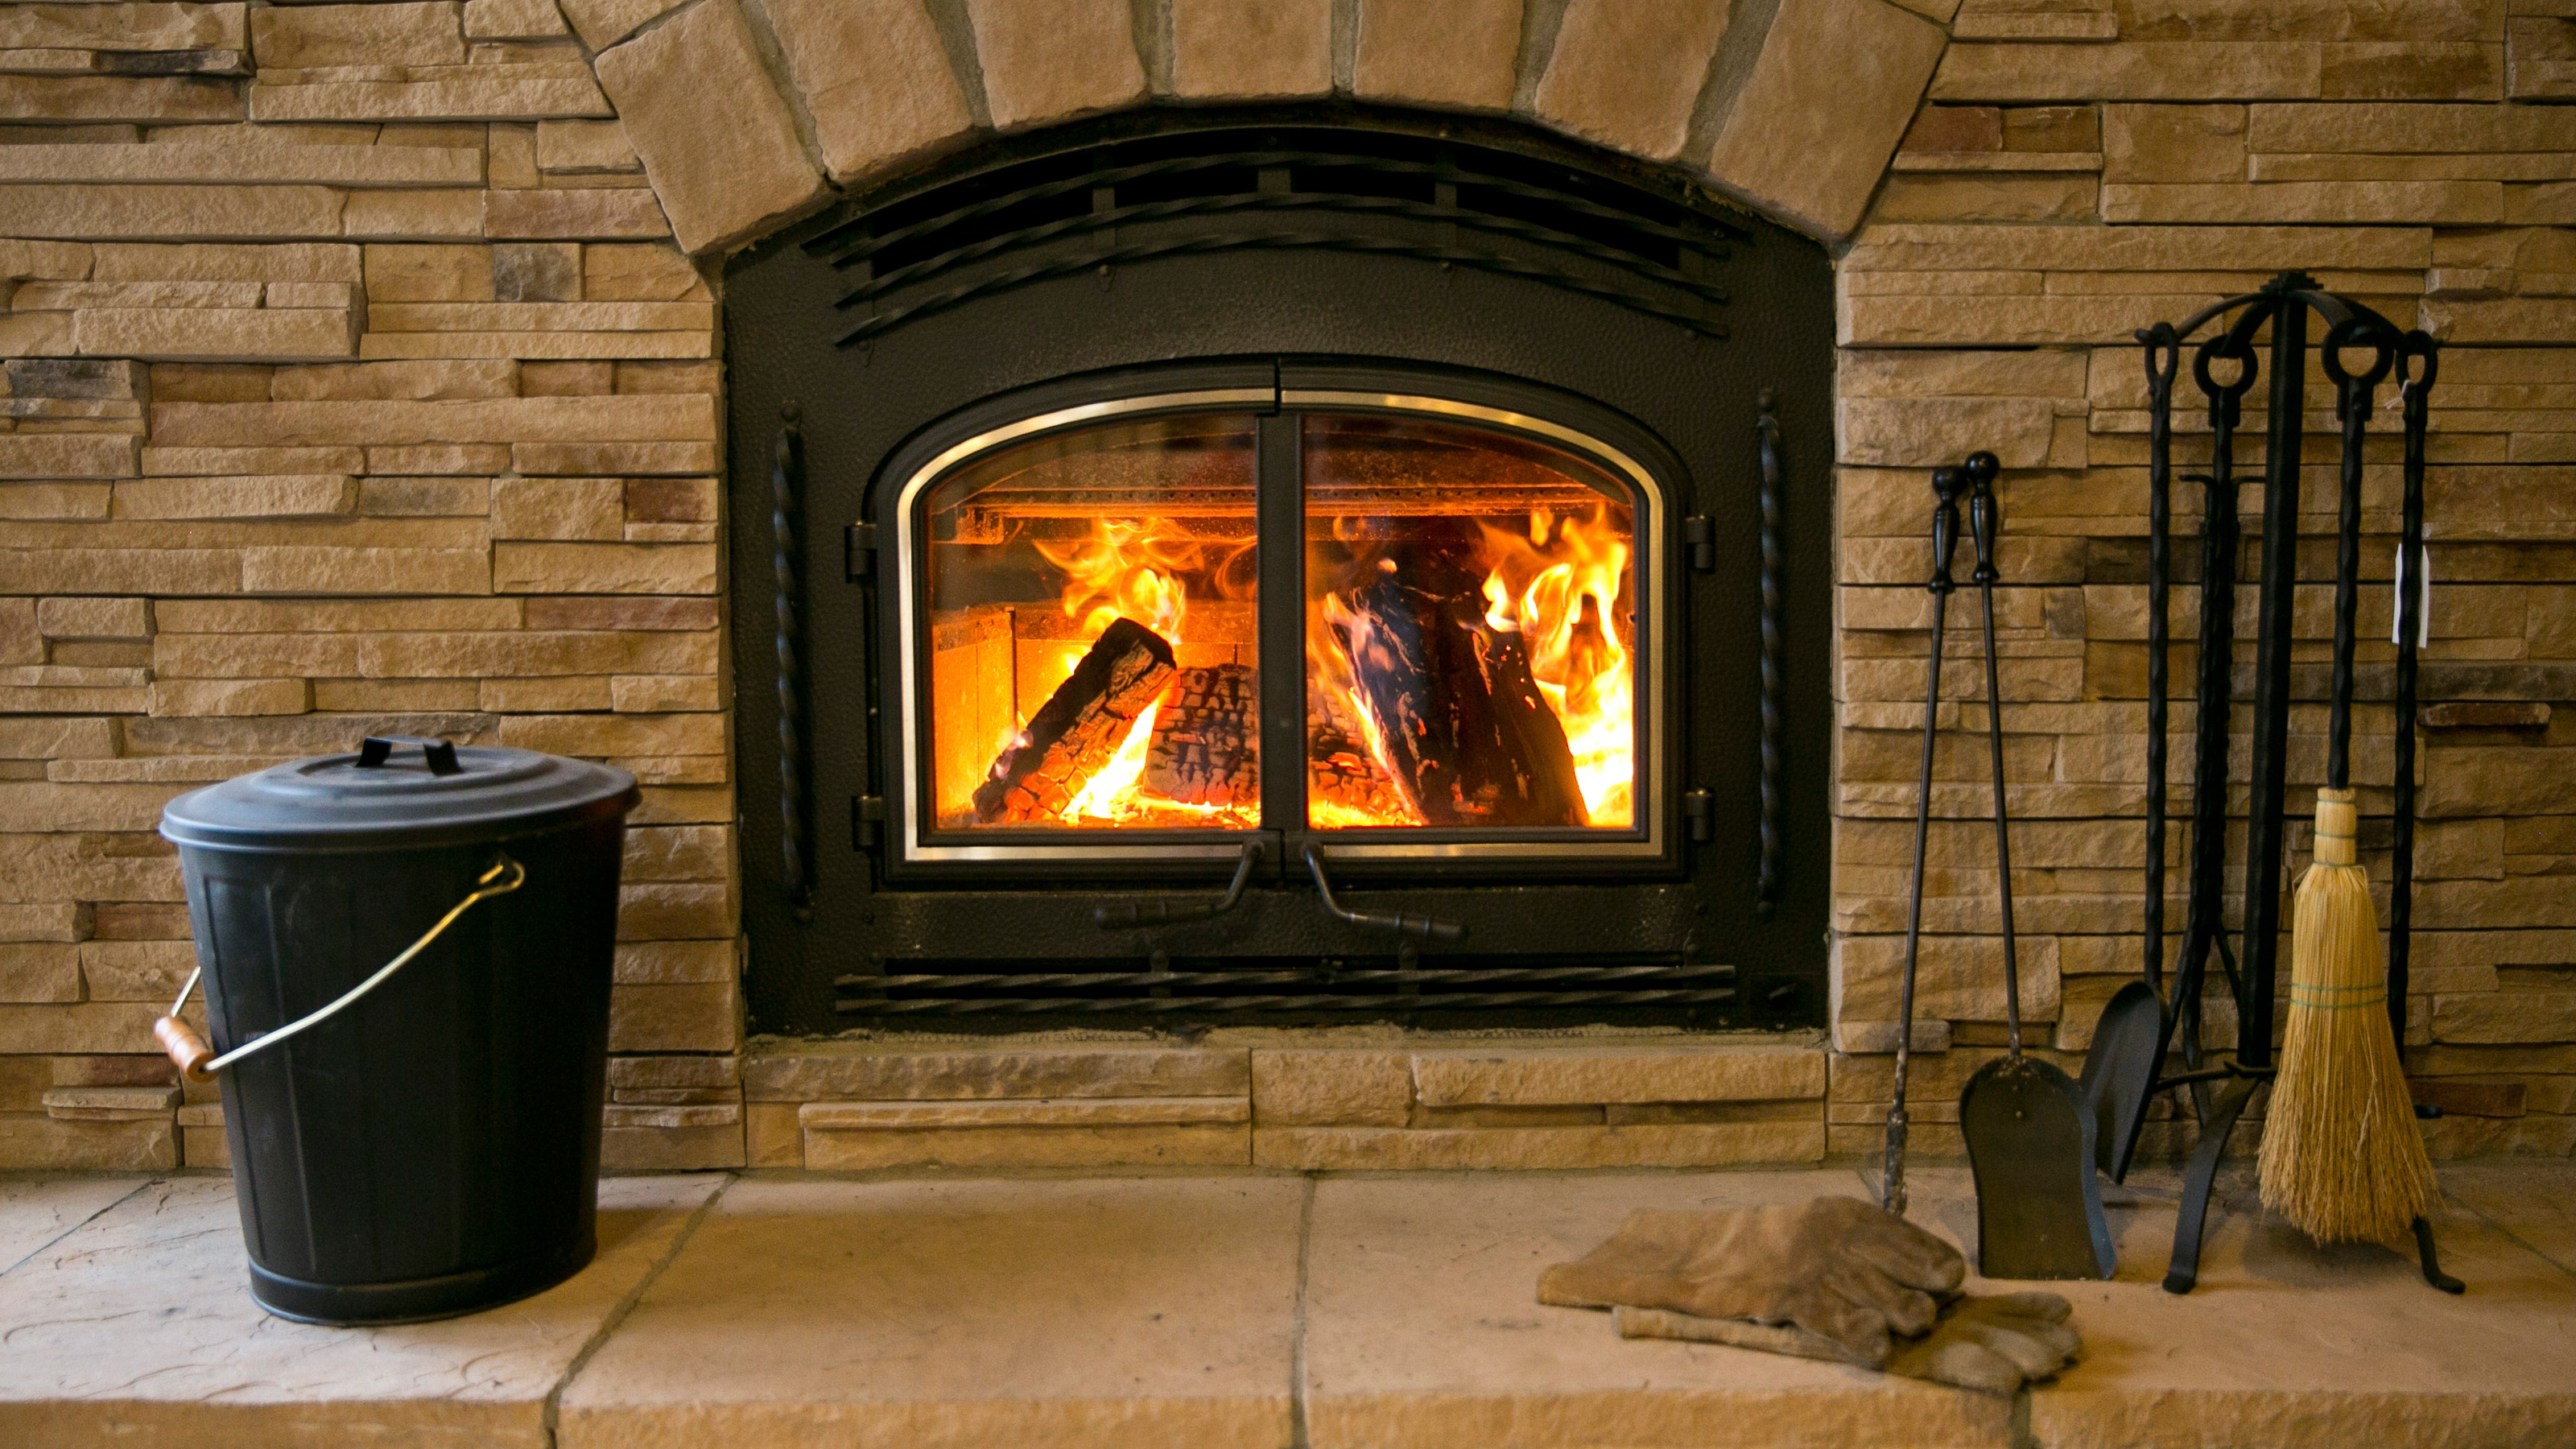 Who Fixes Gas Fireplaces New How to Convert A Gas Fireplace to Wood Burning